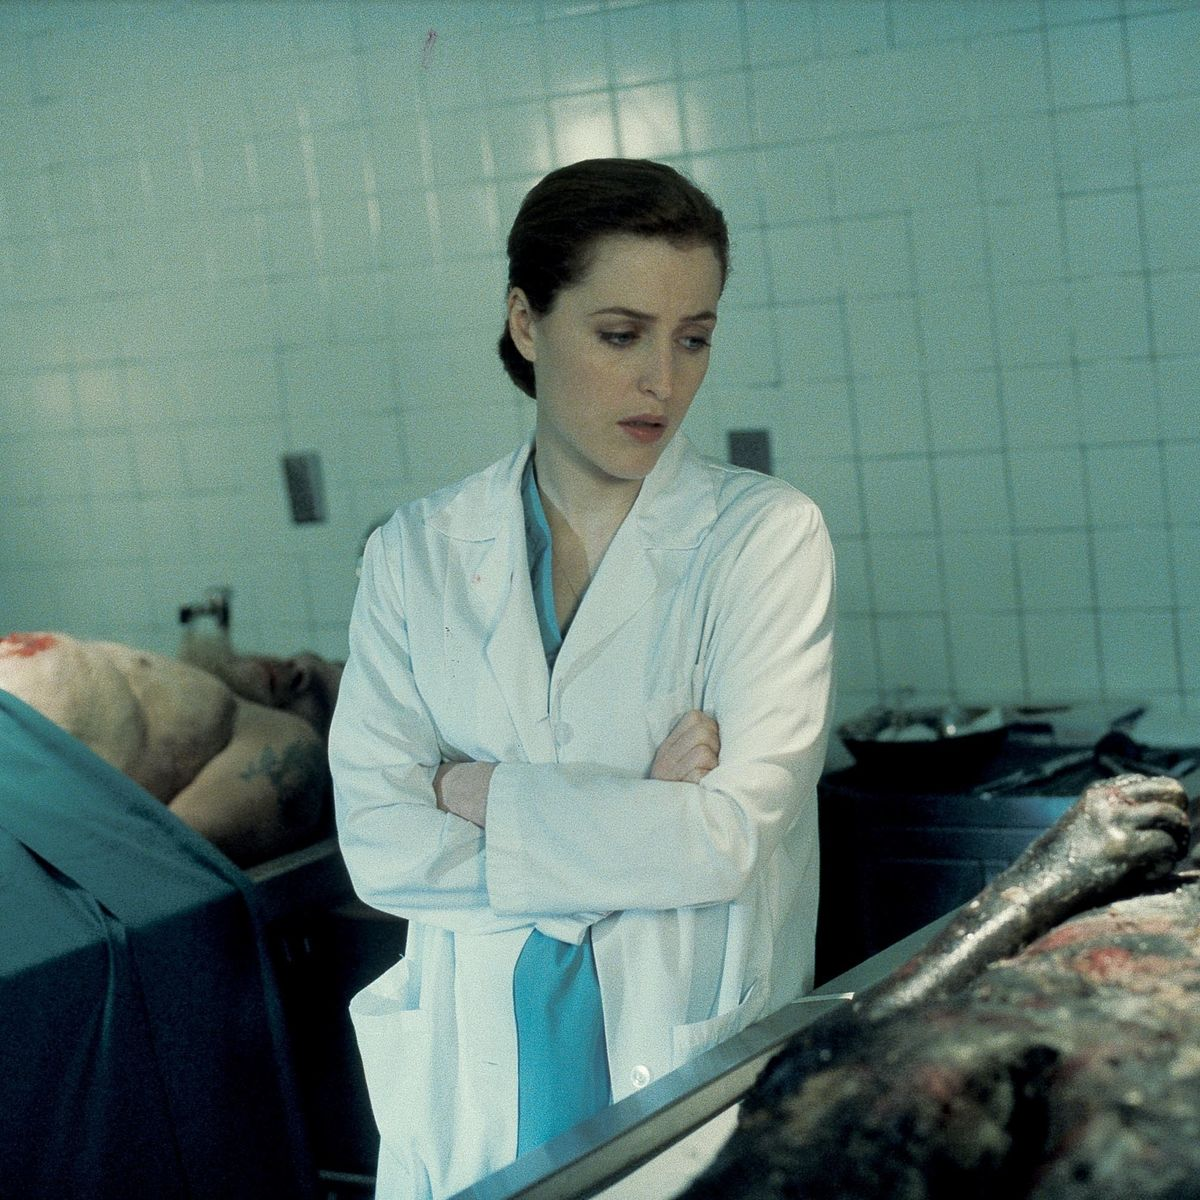 The X-Files episode Leonard Betts - Scully staring at corpse